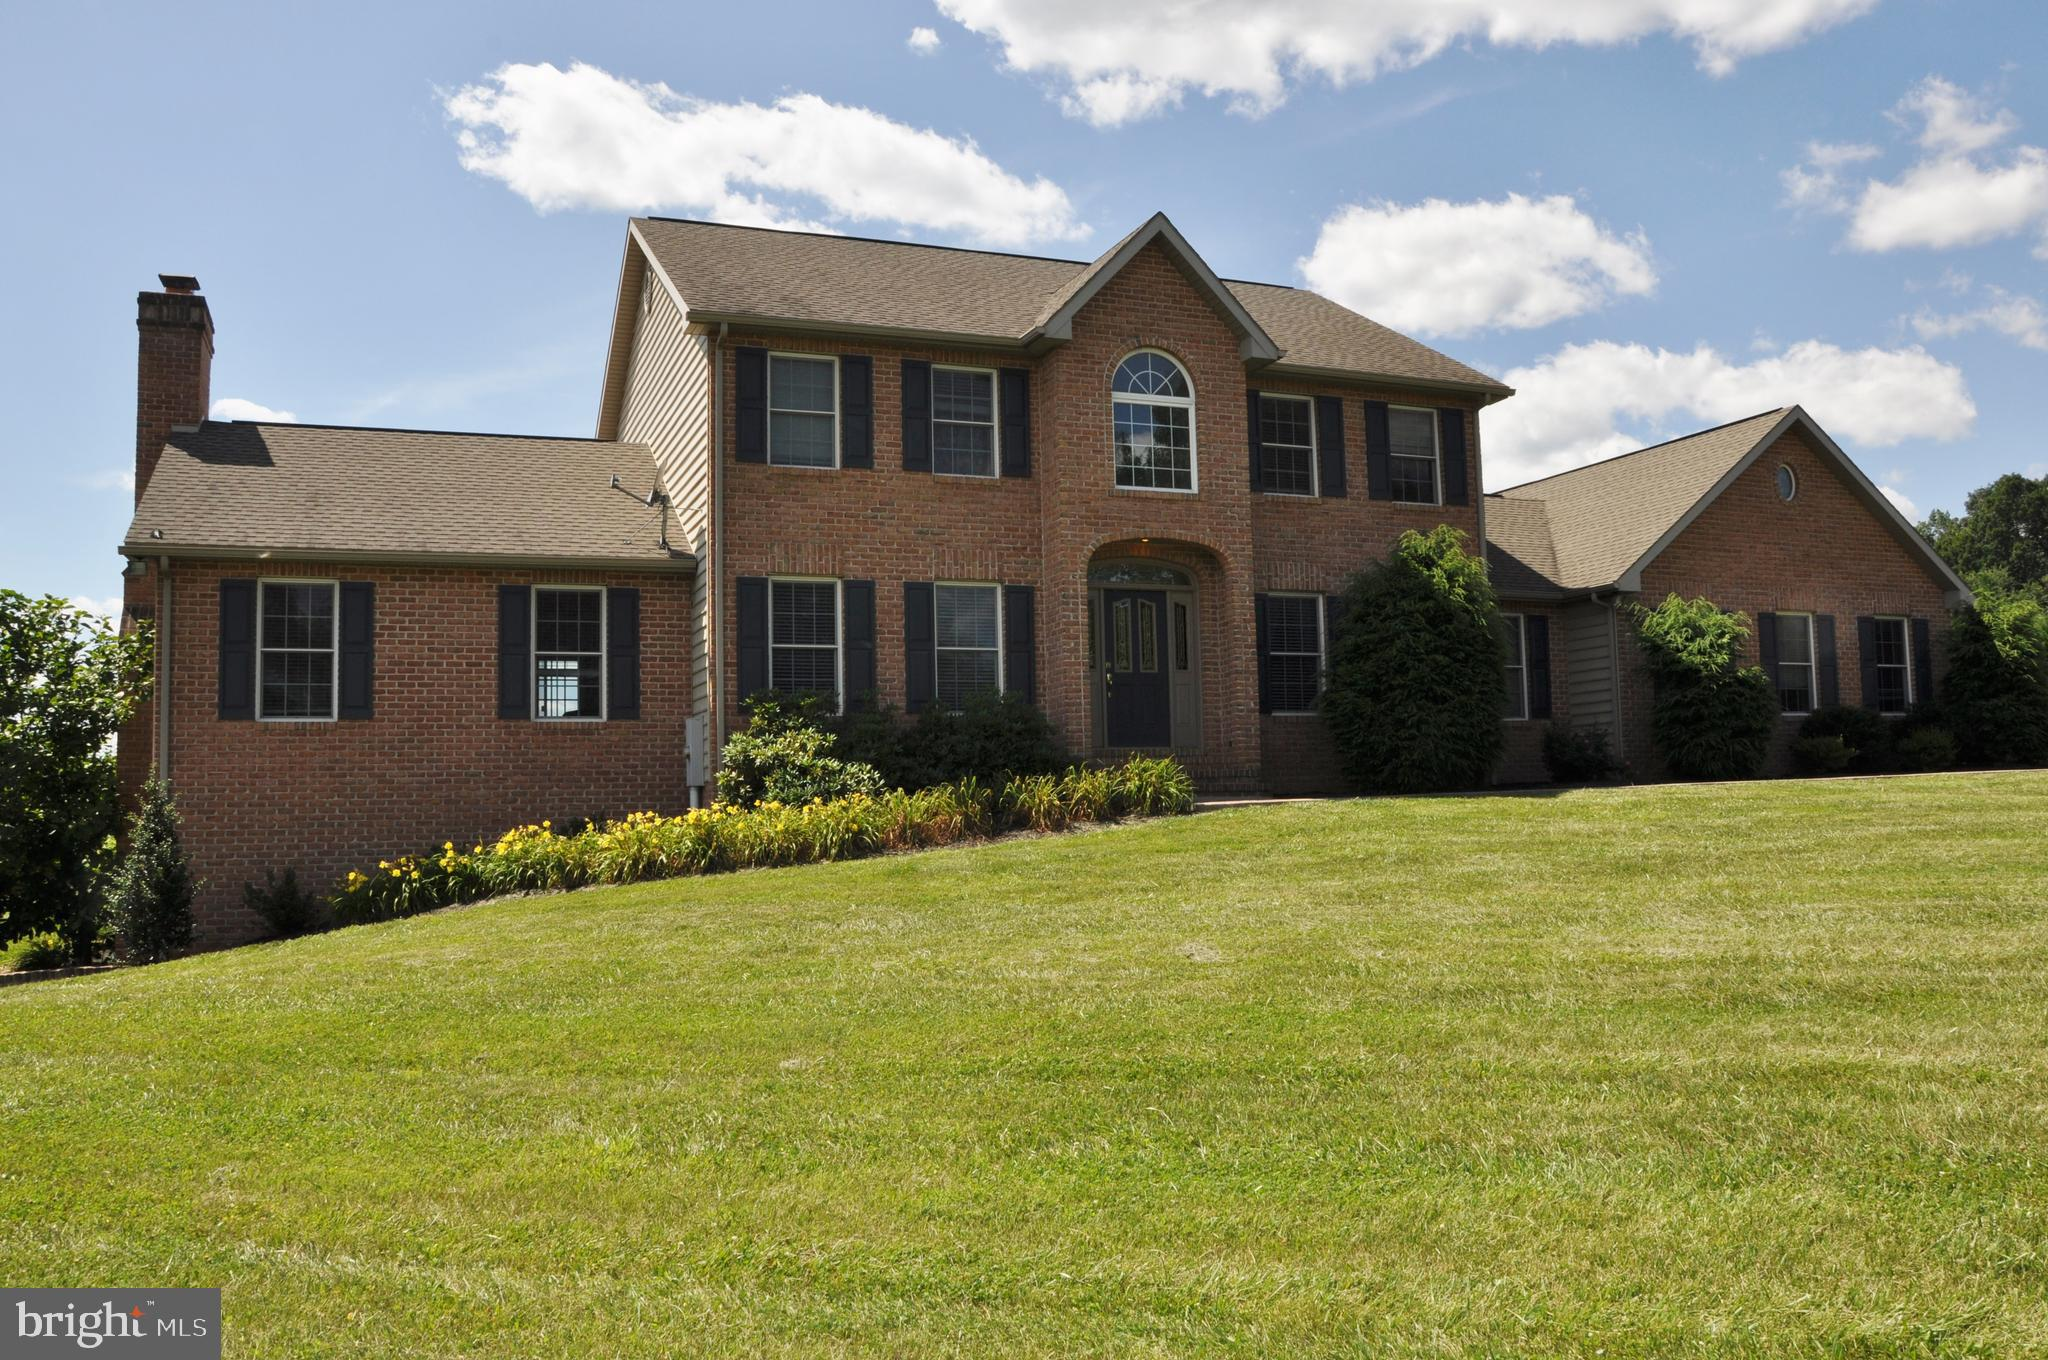 408 BOWIE DRIVE, FALLING WATERS, WV 25419